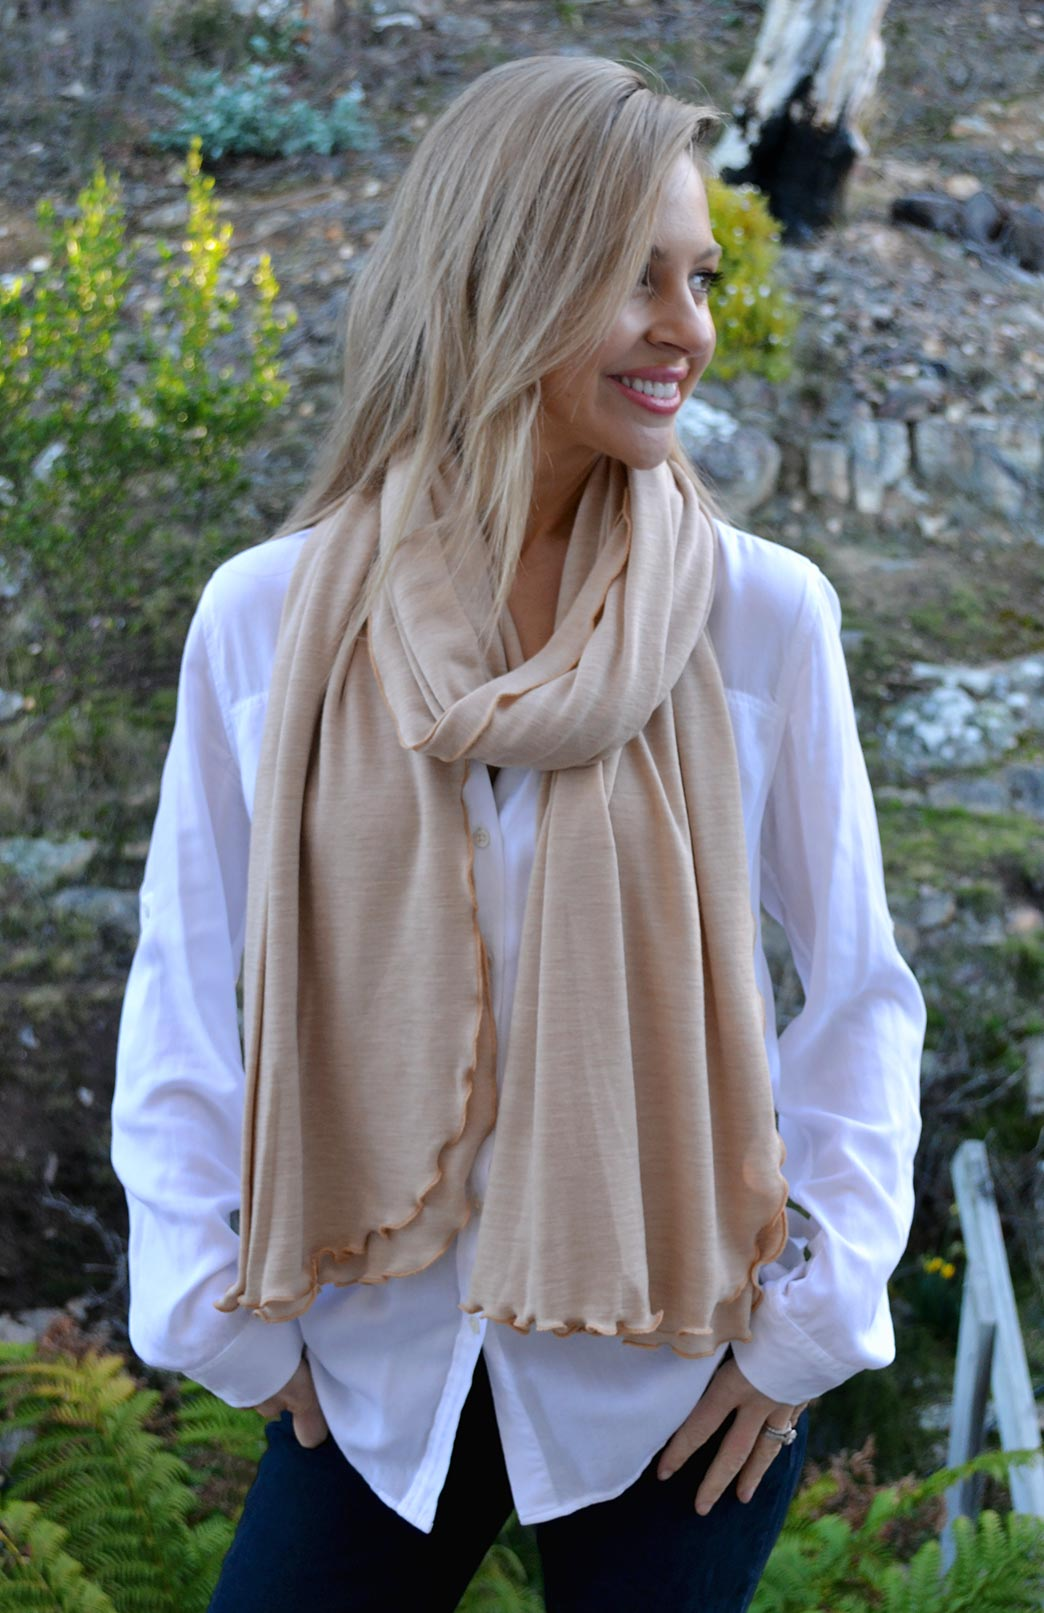 Heavyweight Wrap - Women's Superfine Merino Wool Heavyweight Wrap - Smitten Merino Tasmania Australia